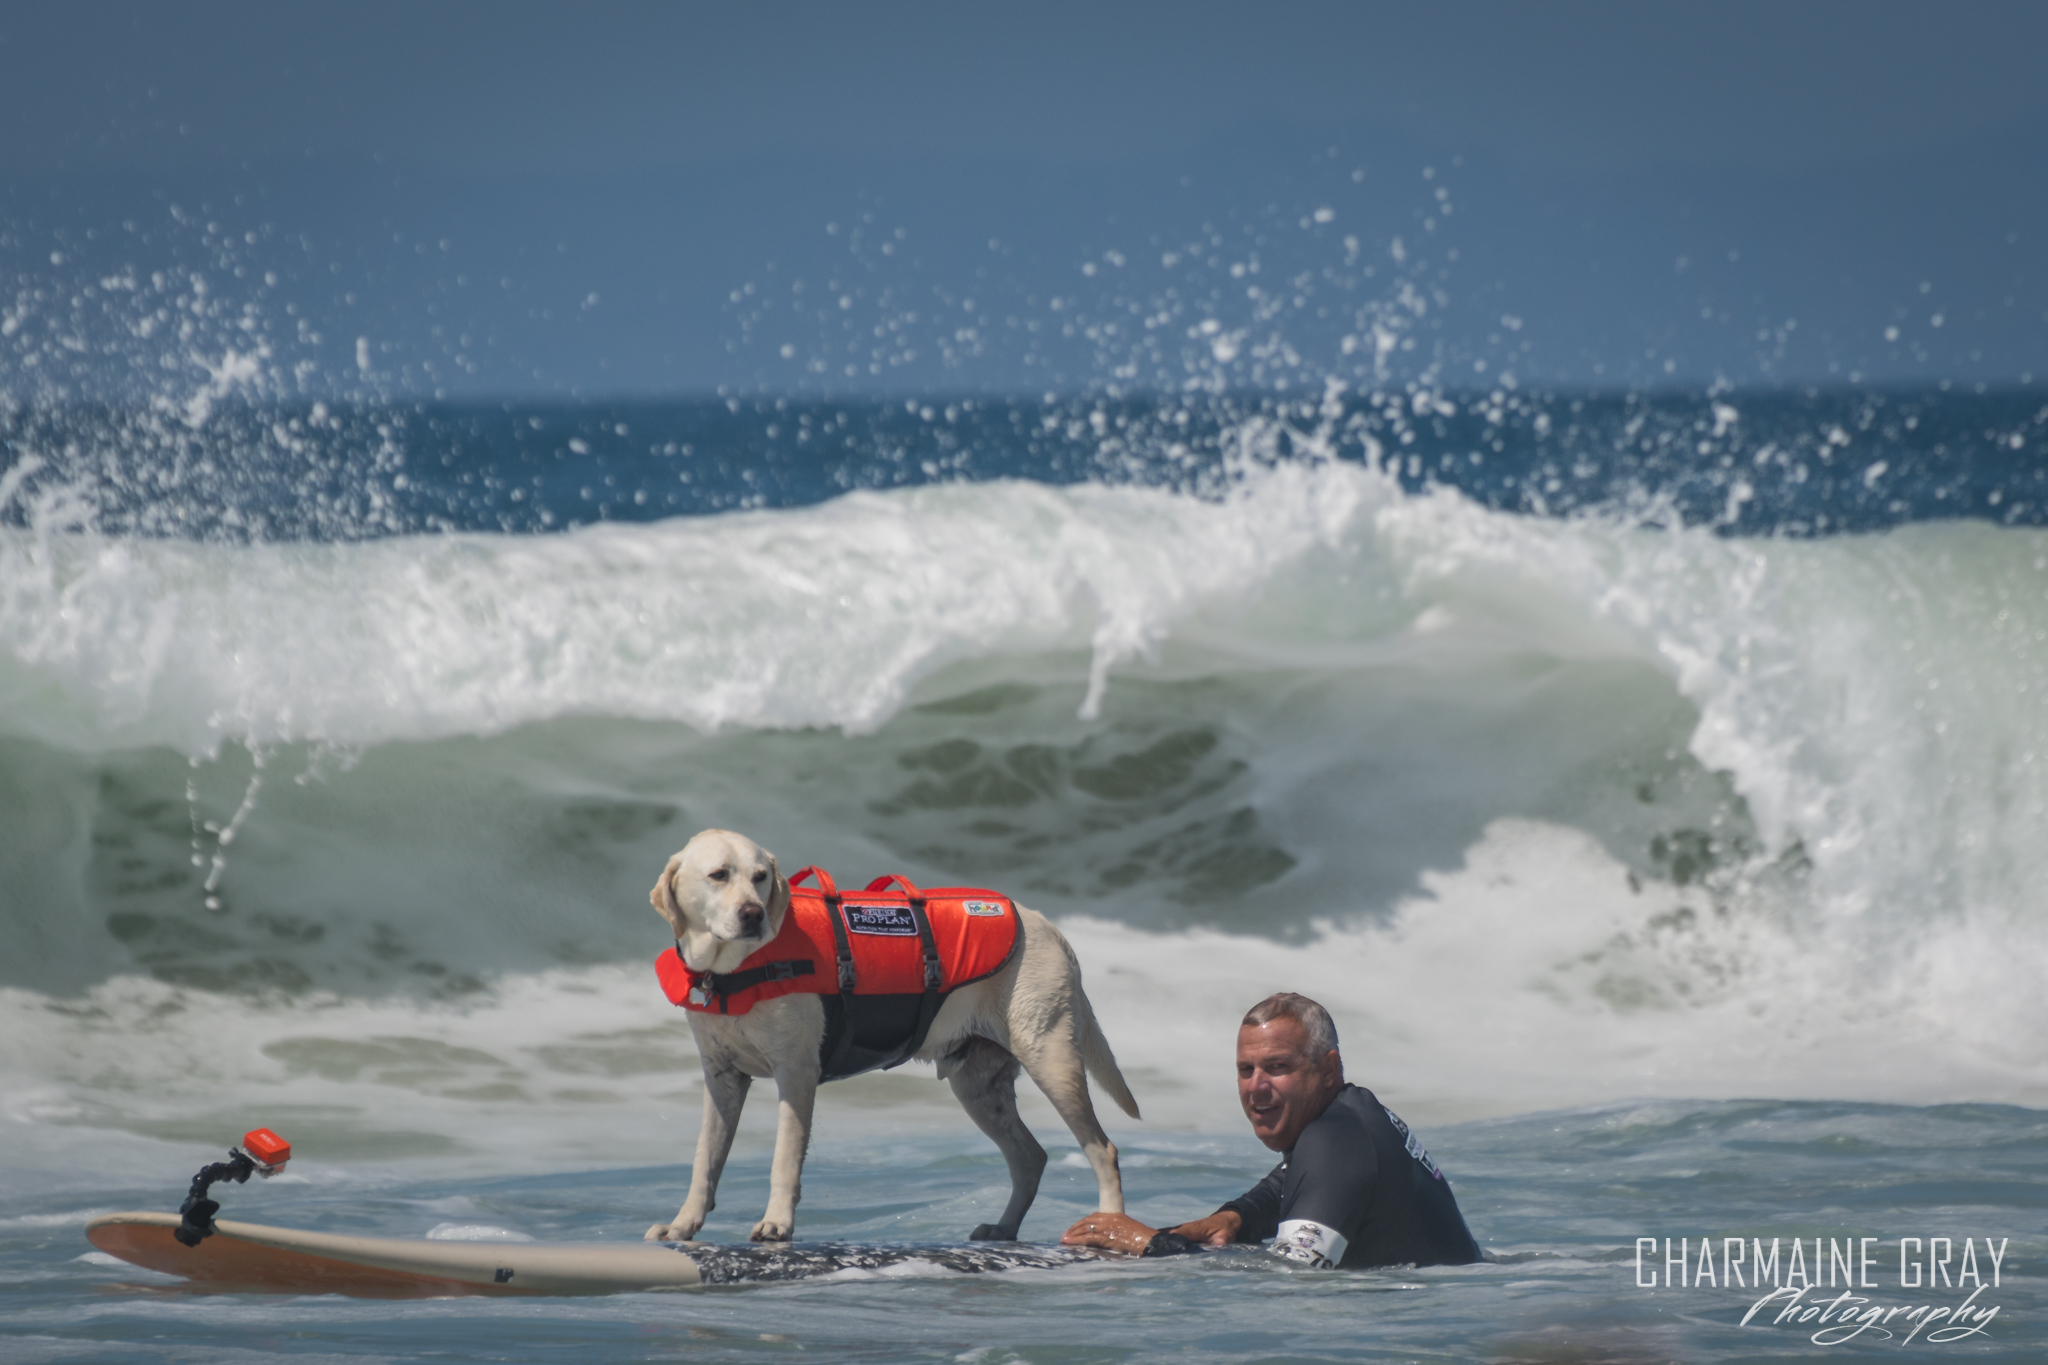 pet photographer, pet photography, pet portrait, pet, animal, charmaine gray photography, charmaine gray pet photography, san diego,dog,canine,california,surf,surfing,yellow lab, labrador retreiver,haole